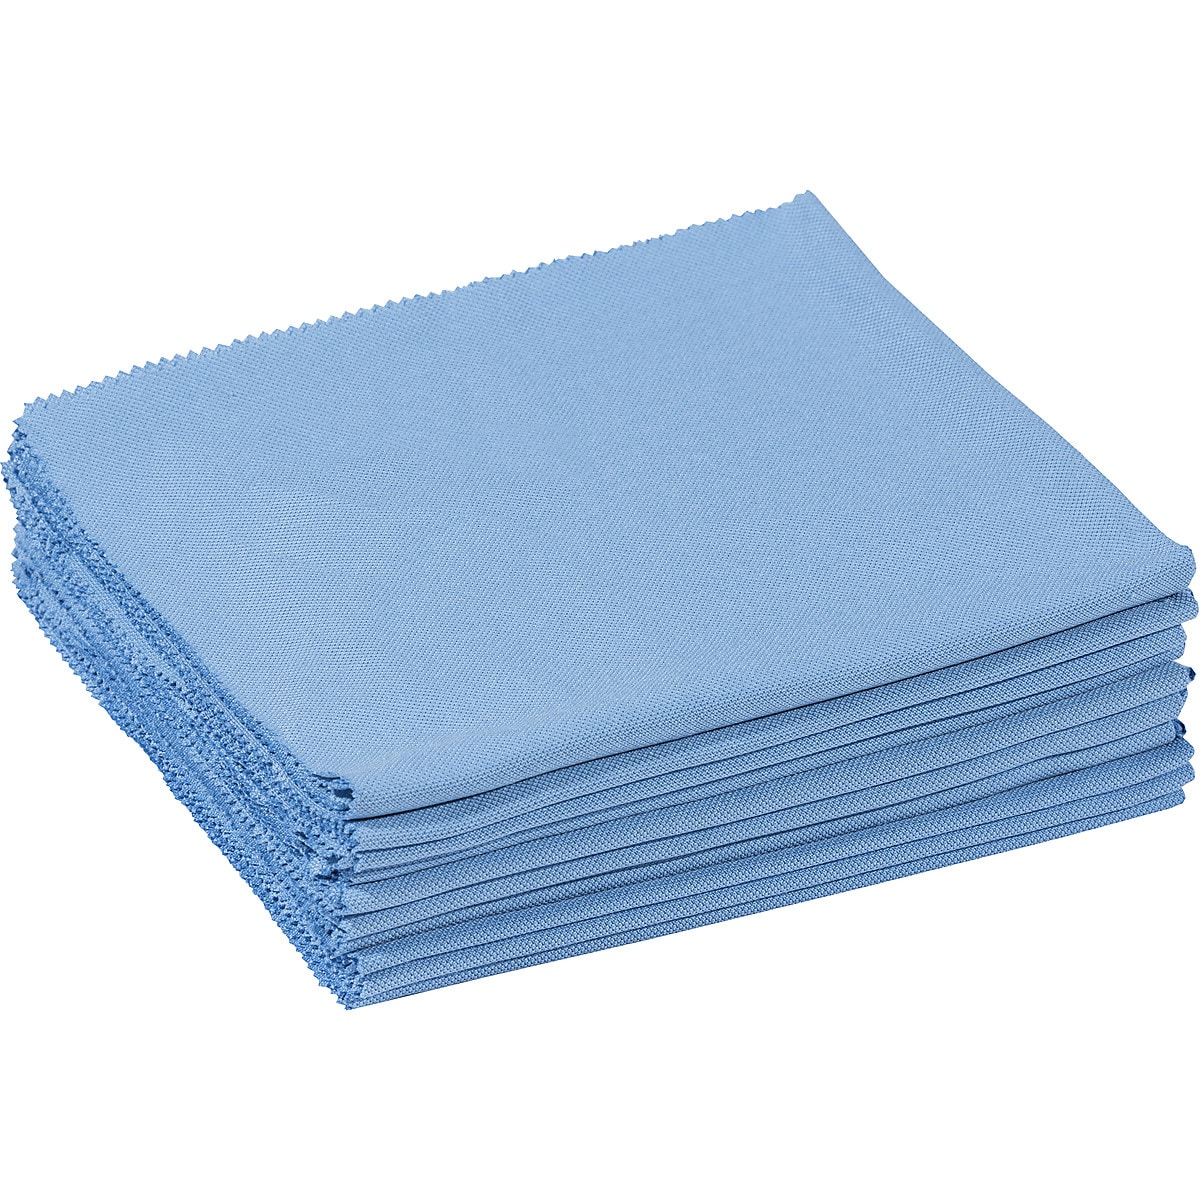 Poler-/fönsterduk Smart Microfiber, 10-pack.